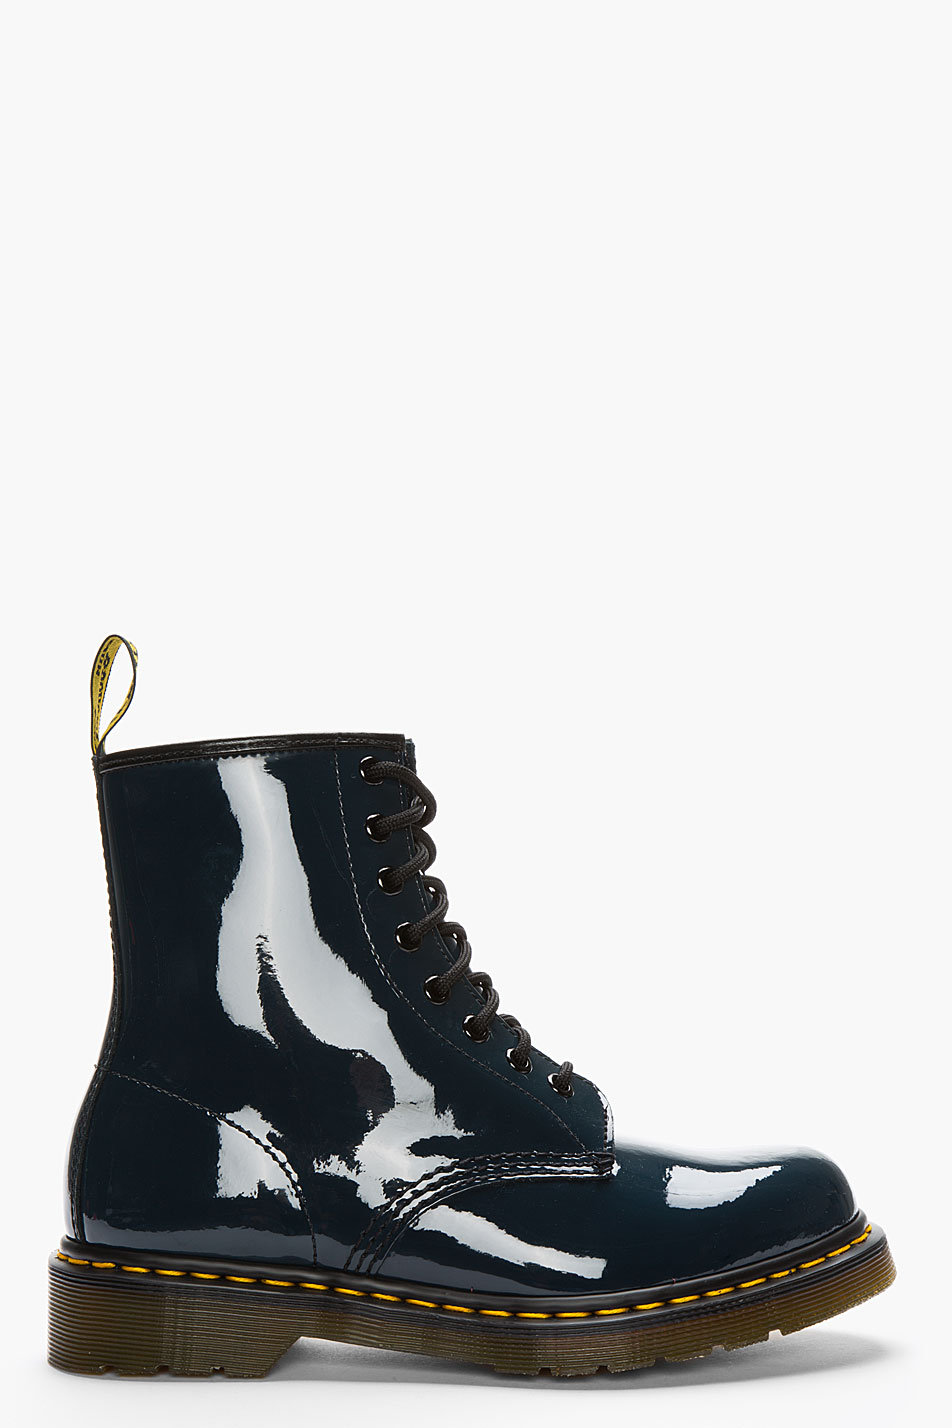 Dr Martens Navy Patent Leather Original 8 Eye Boots In